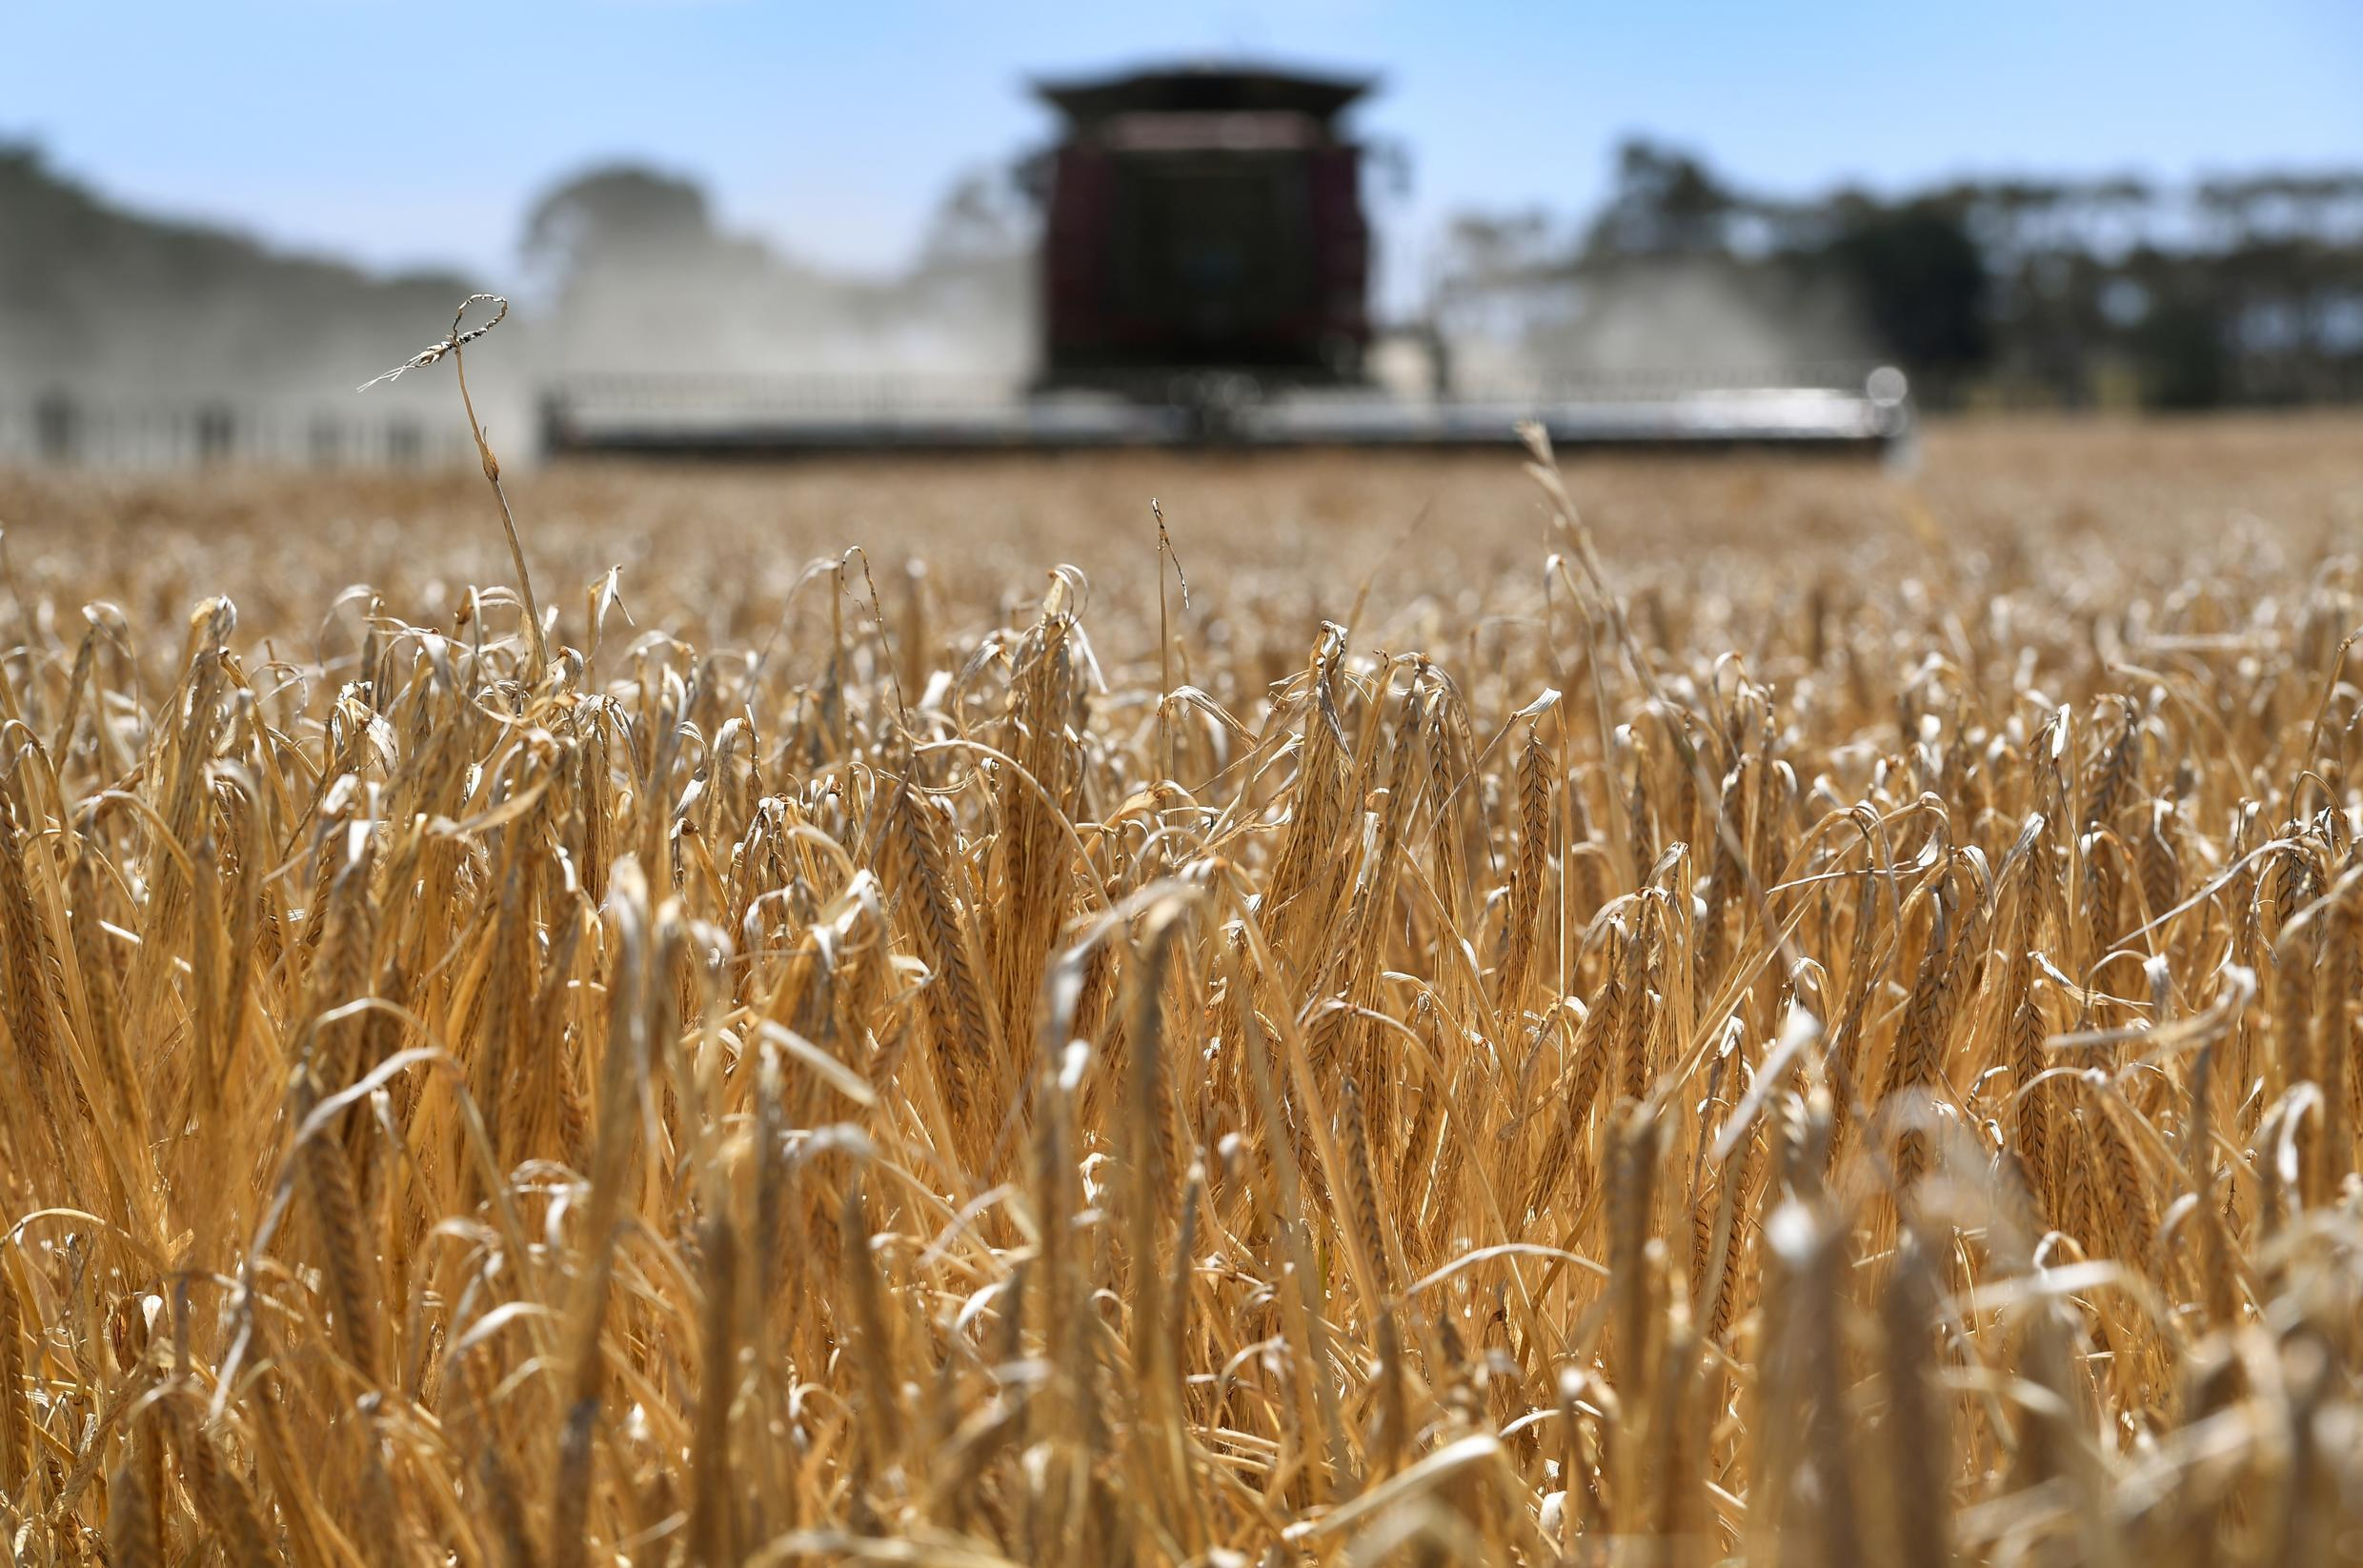 Australia's barley exports to China had been worth around US$1 billion a year before a recent drought